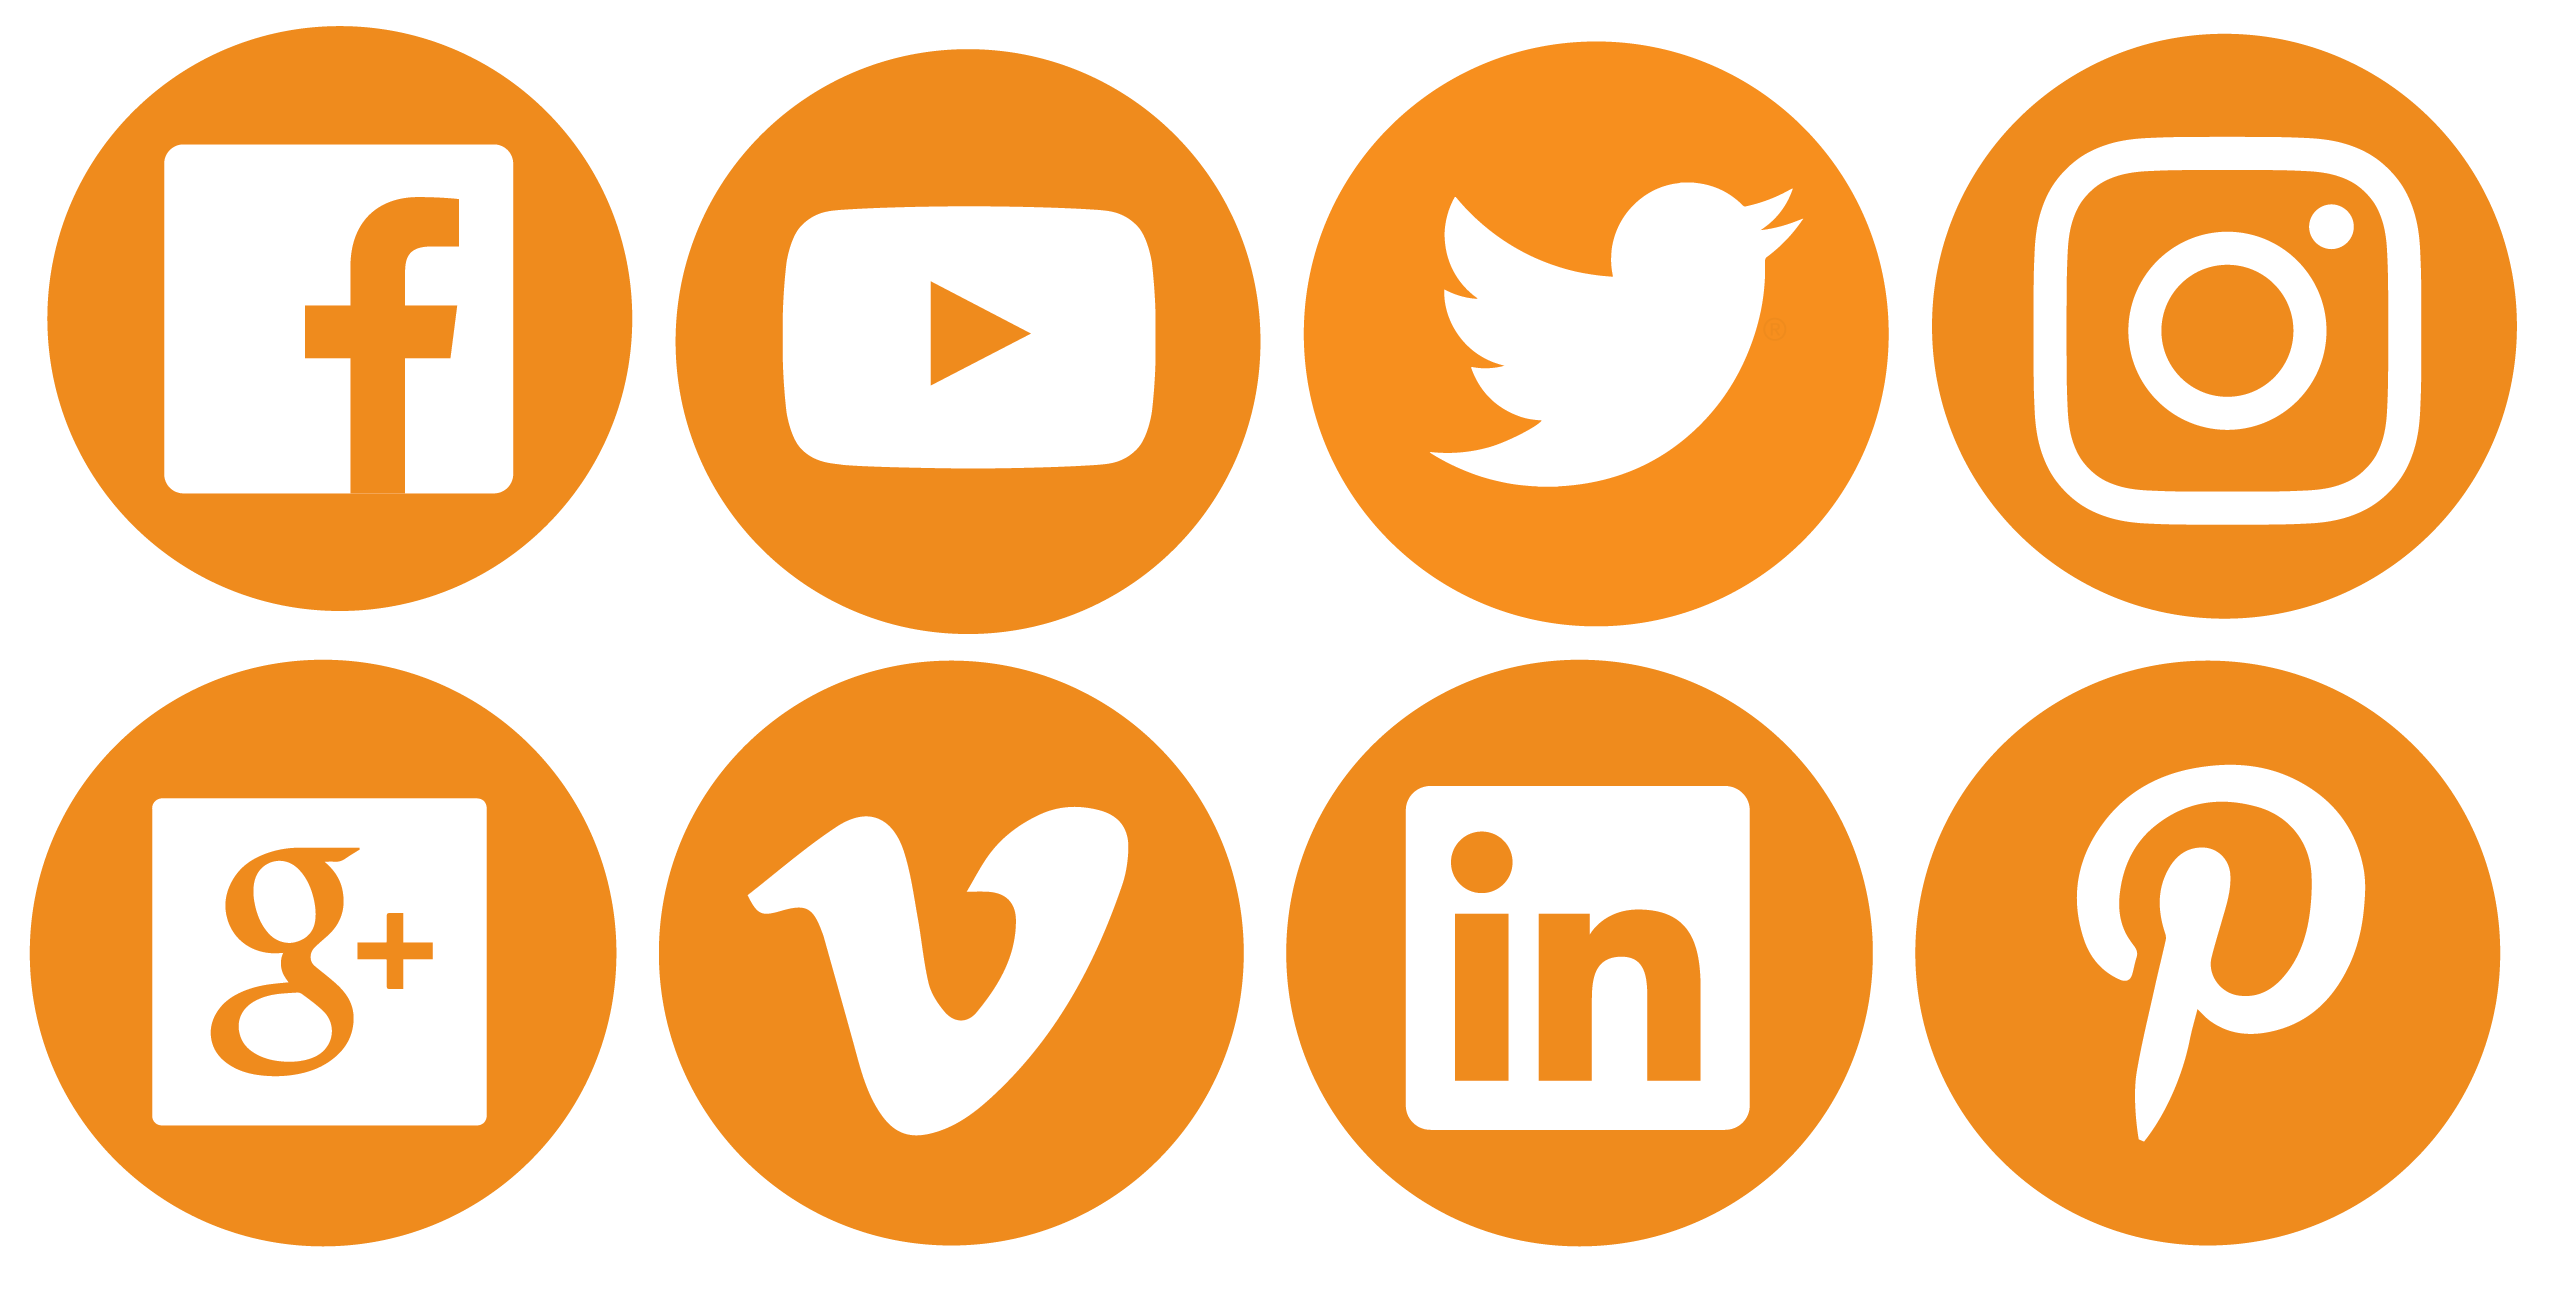 viva-logo-social-media-icons - Social Media Icons PNG